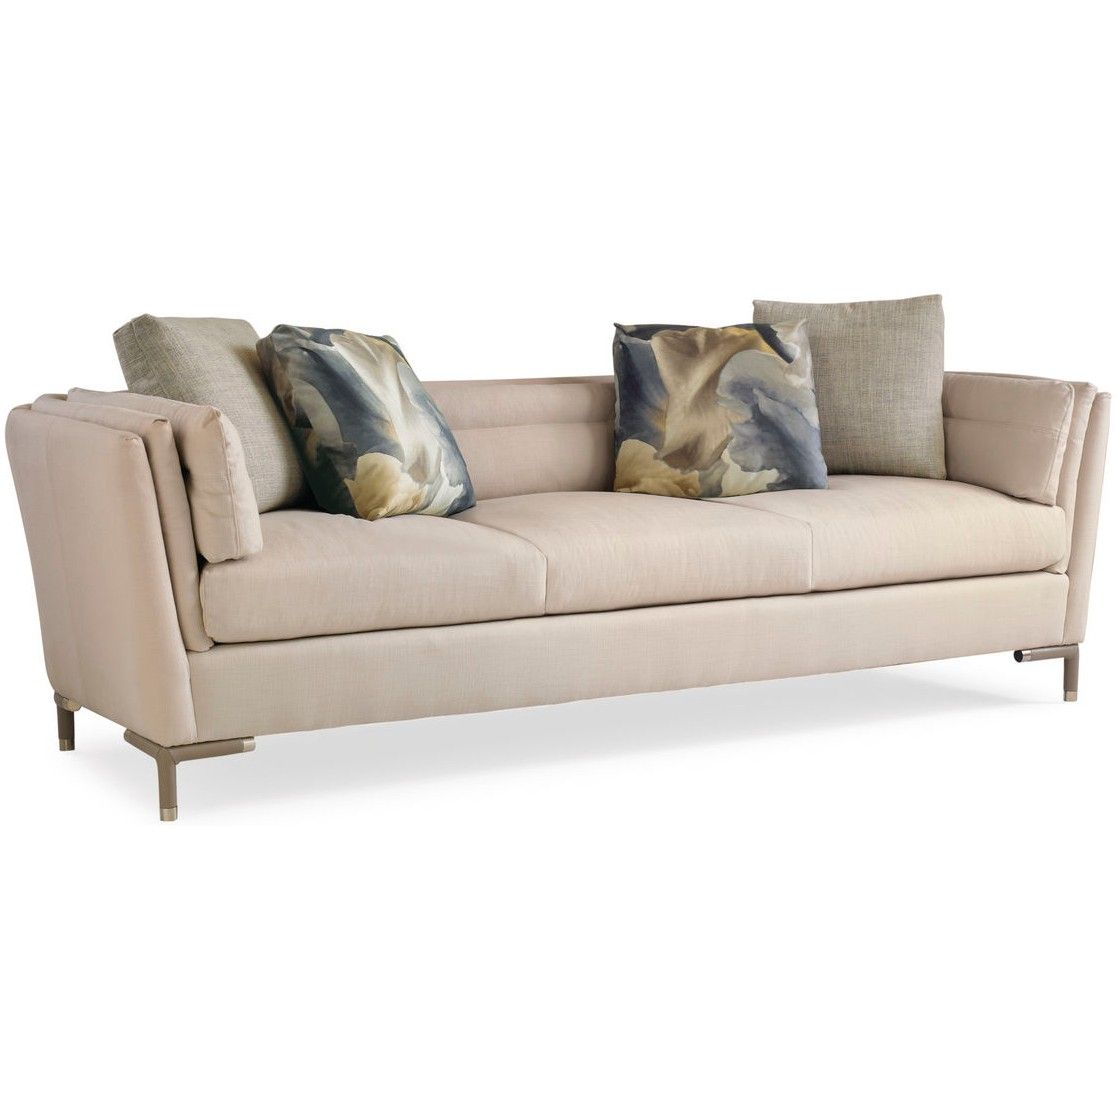 Caracole Up To Something Sofa Sofas Loveseats Settees Living Room Furniture Candelabra Inc